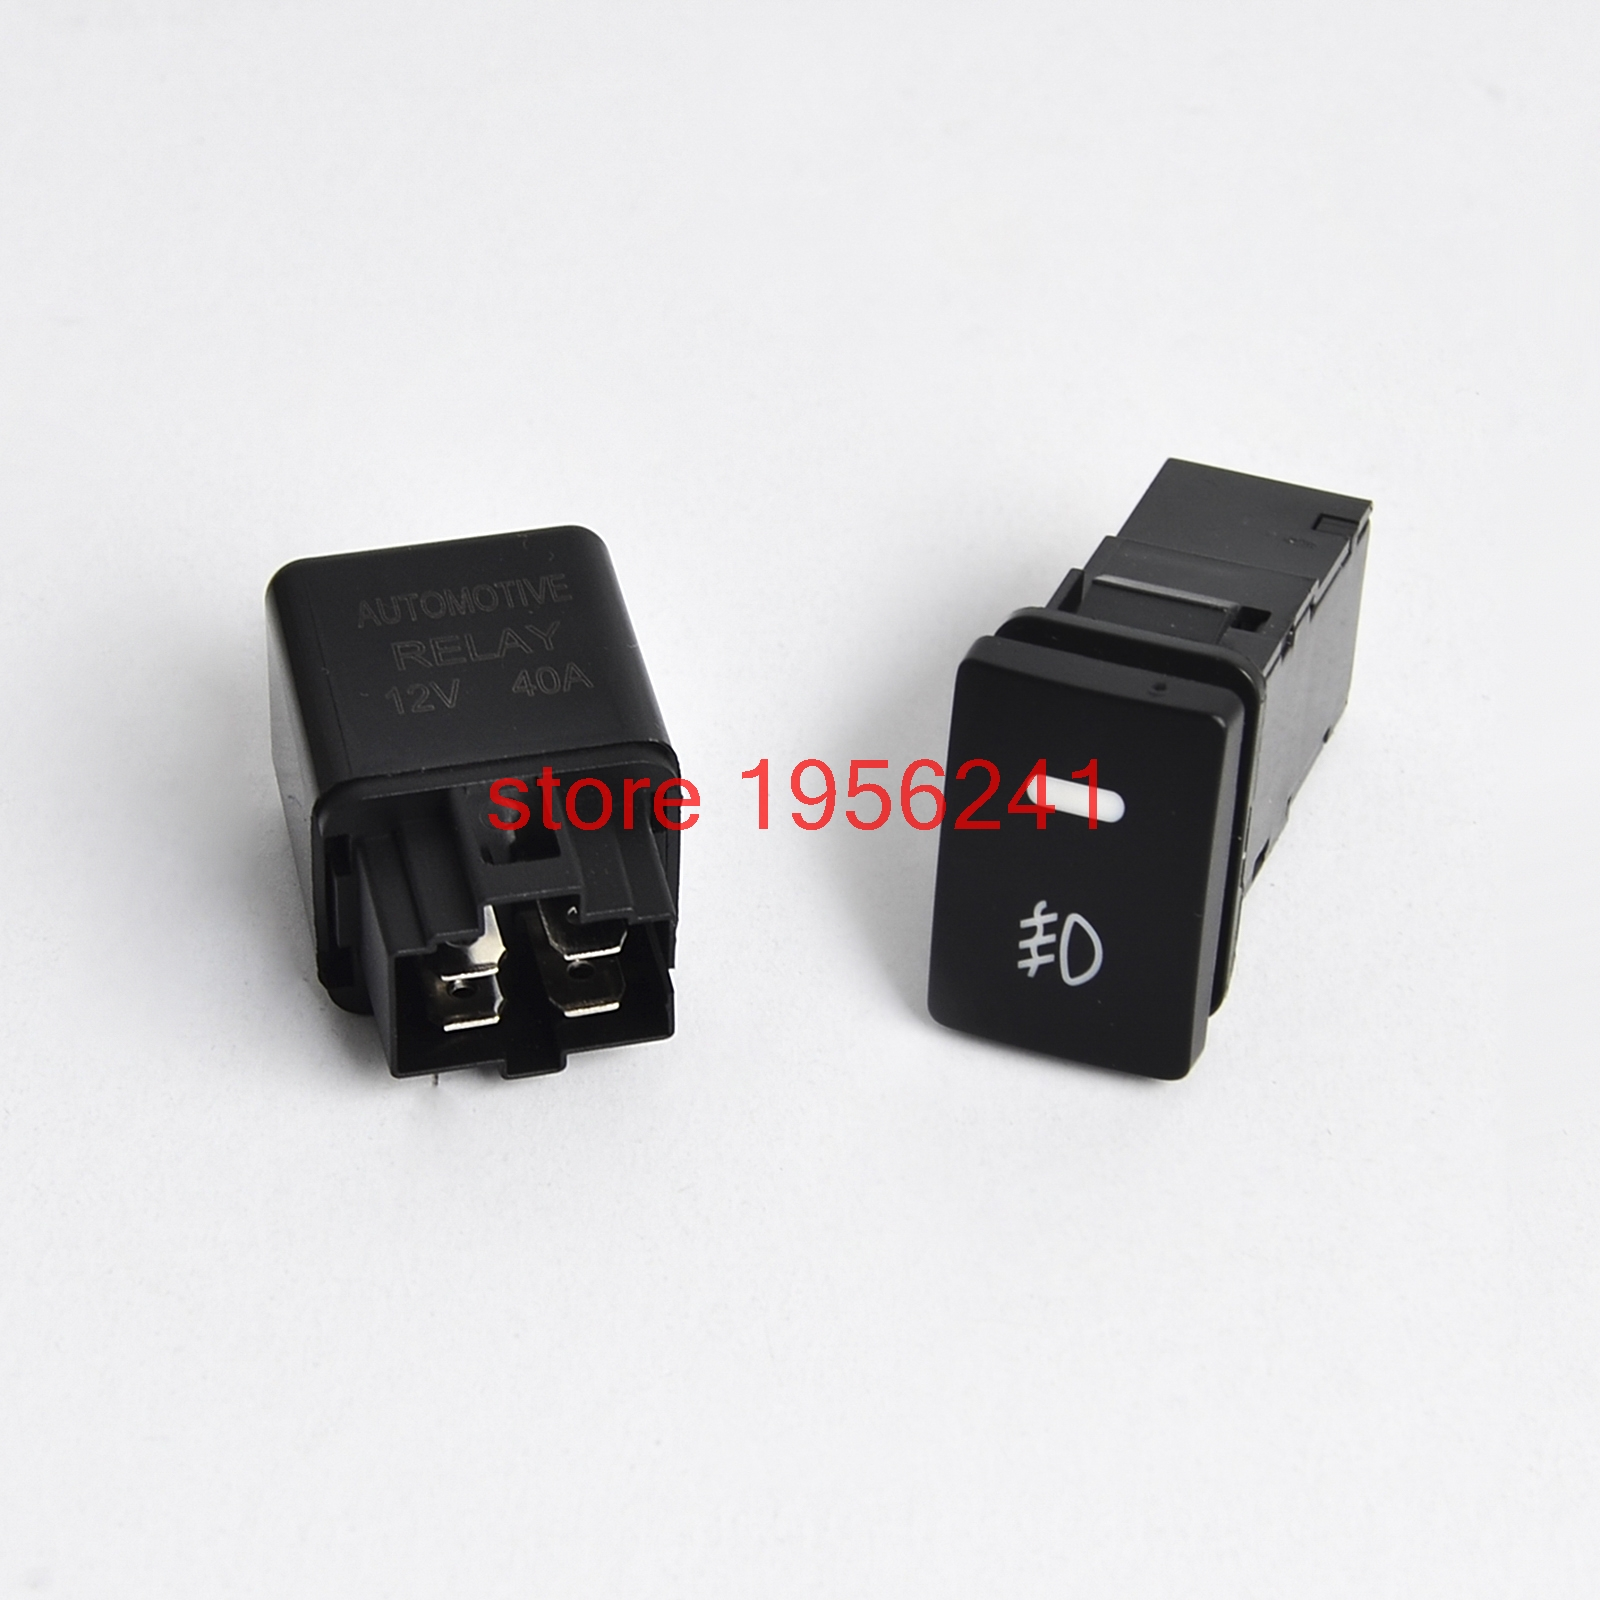 Cnc Wiring Harness Electrical Diagrams Schematics Smart Home Design H2cnc 1 Pair Front Bumper Fog Light Clear Switch